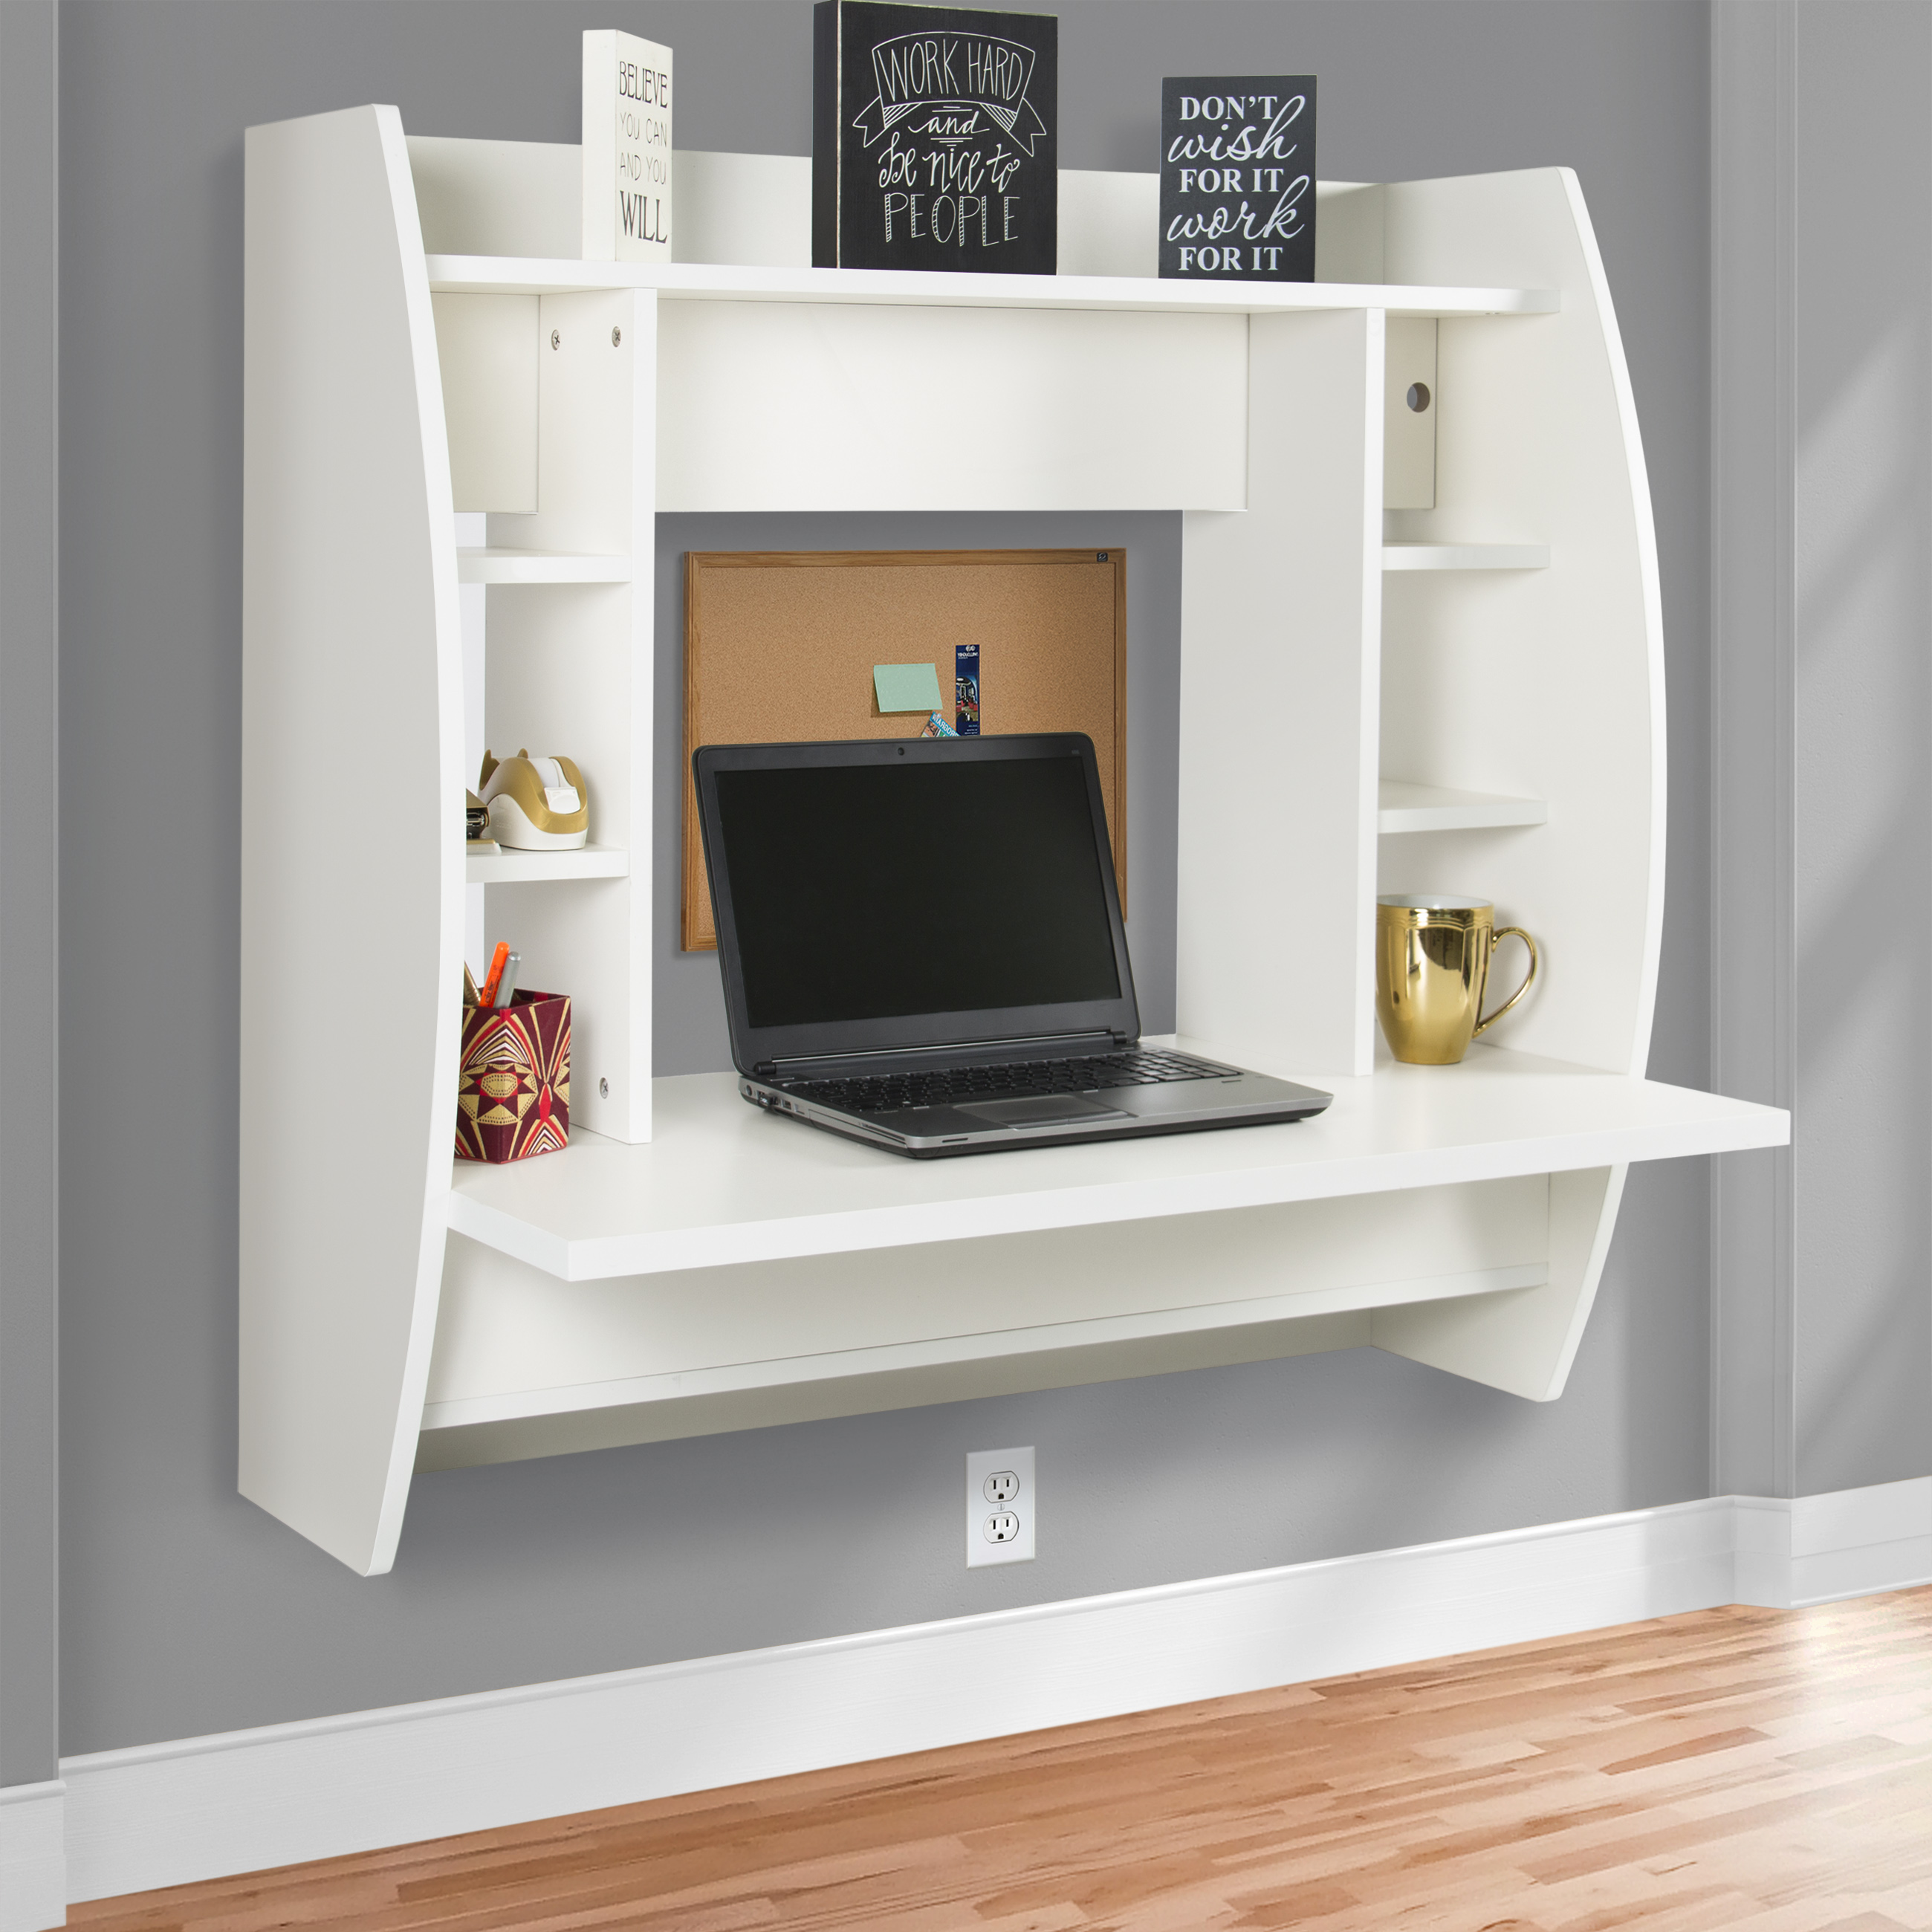 Best Choice Products Wall Mount Floating Computer Desk. Distressed Console Table With Drawers. Kenmore Refrigerator Drawer. Wall Mounted Writing Desk. Rustic Counter Height Table. Standing Desk Stool. Front Desk Job Openings. Step 2 Desks. White Foldable Table